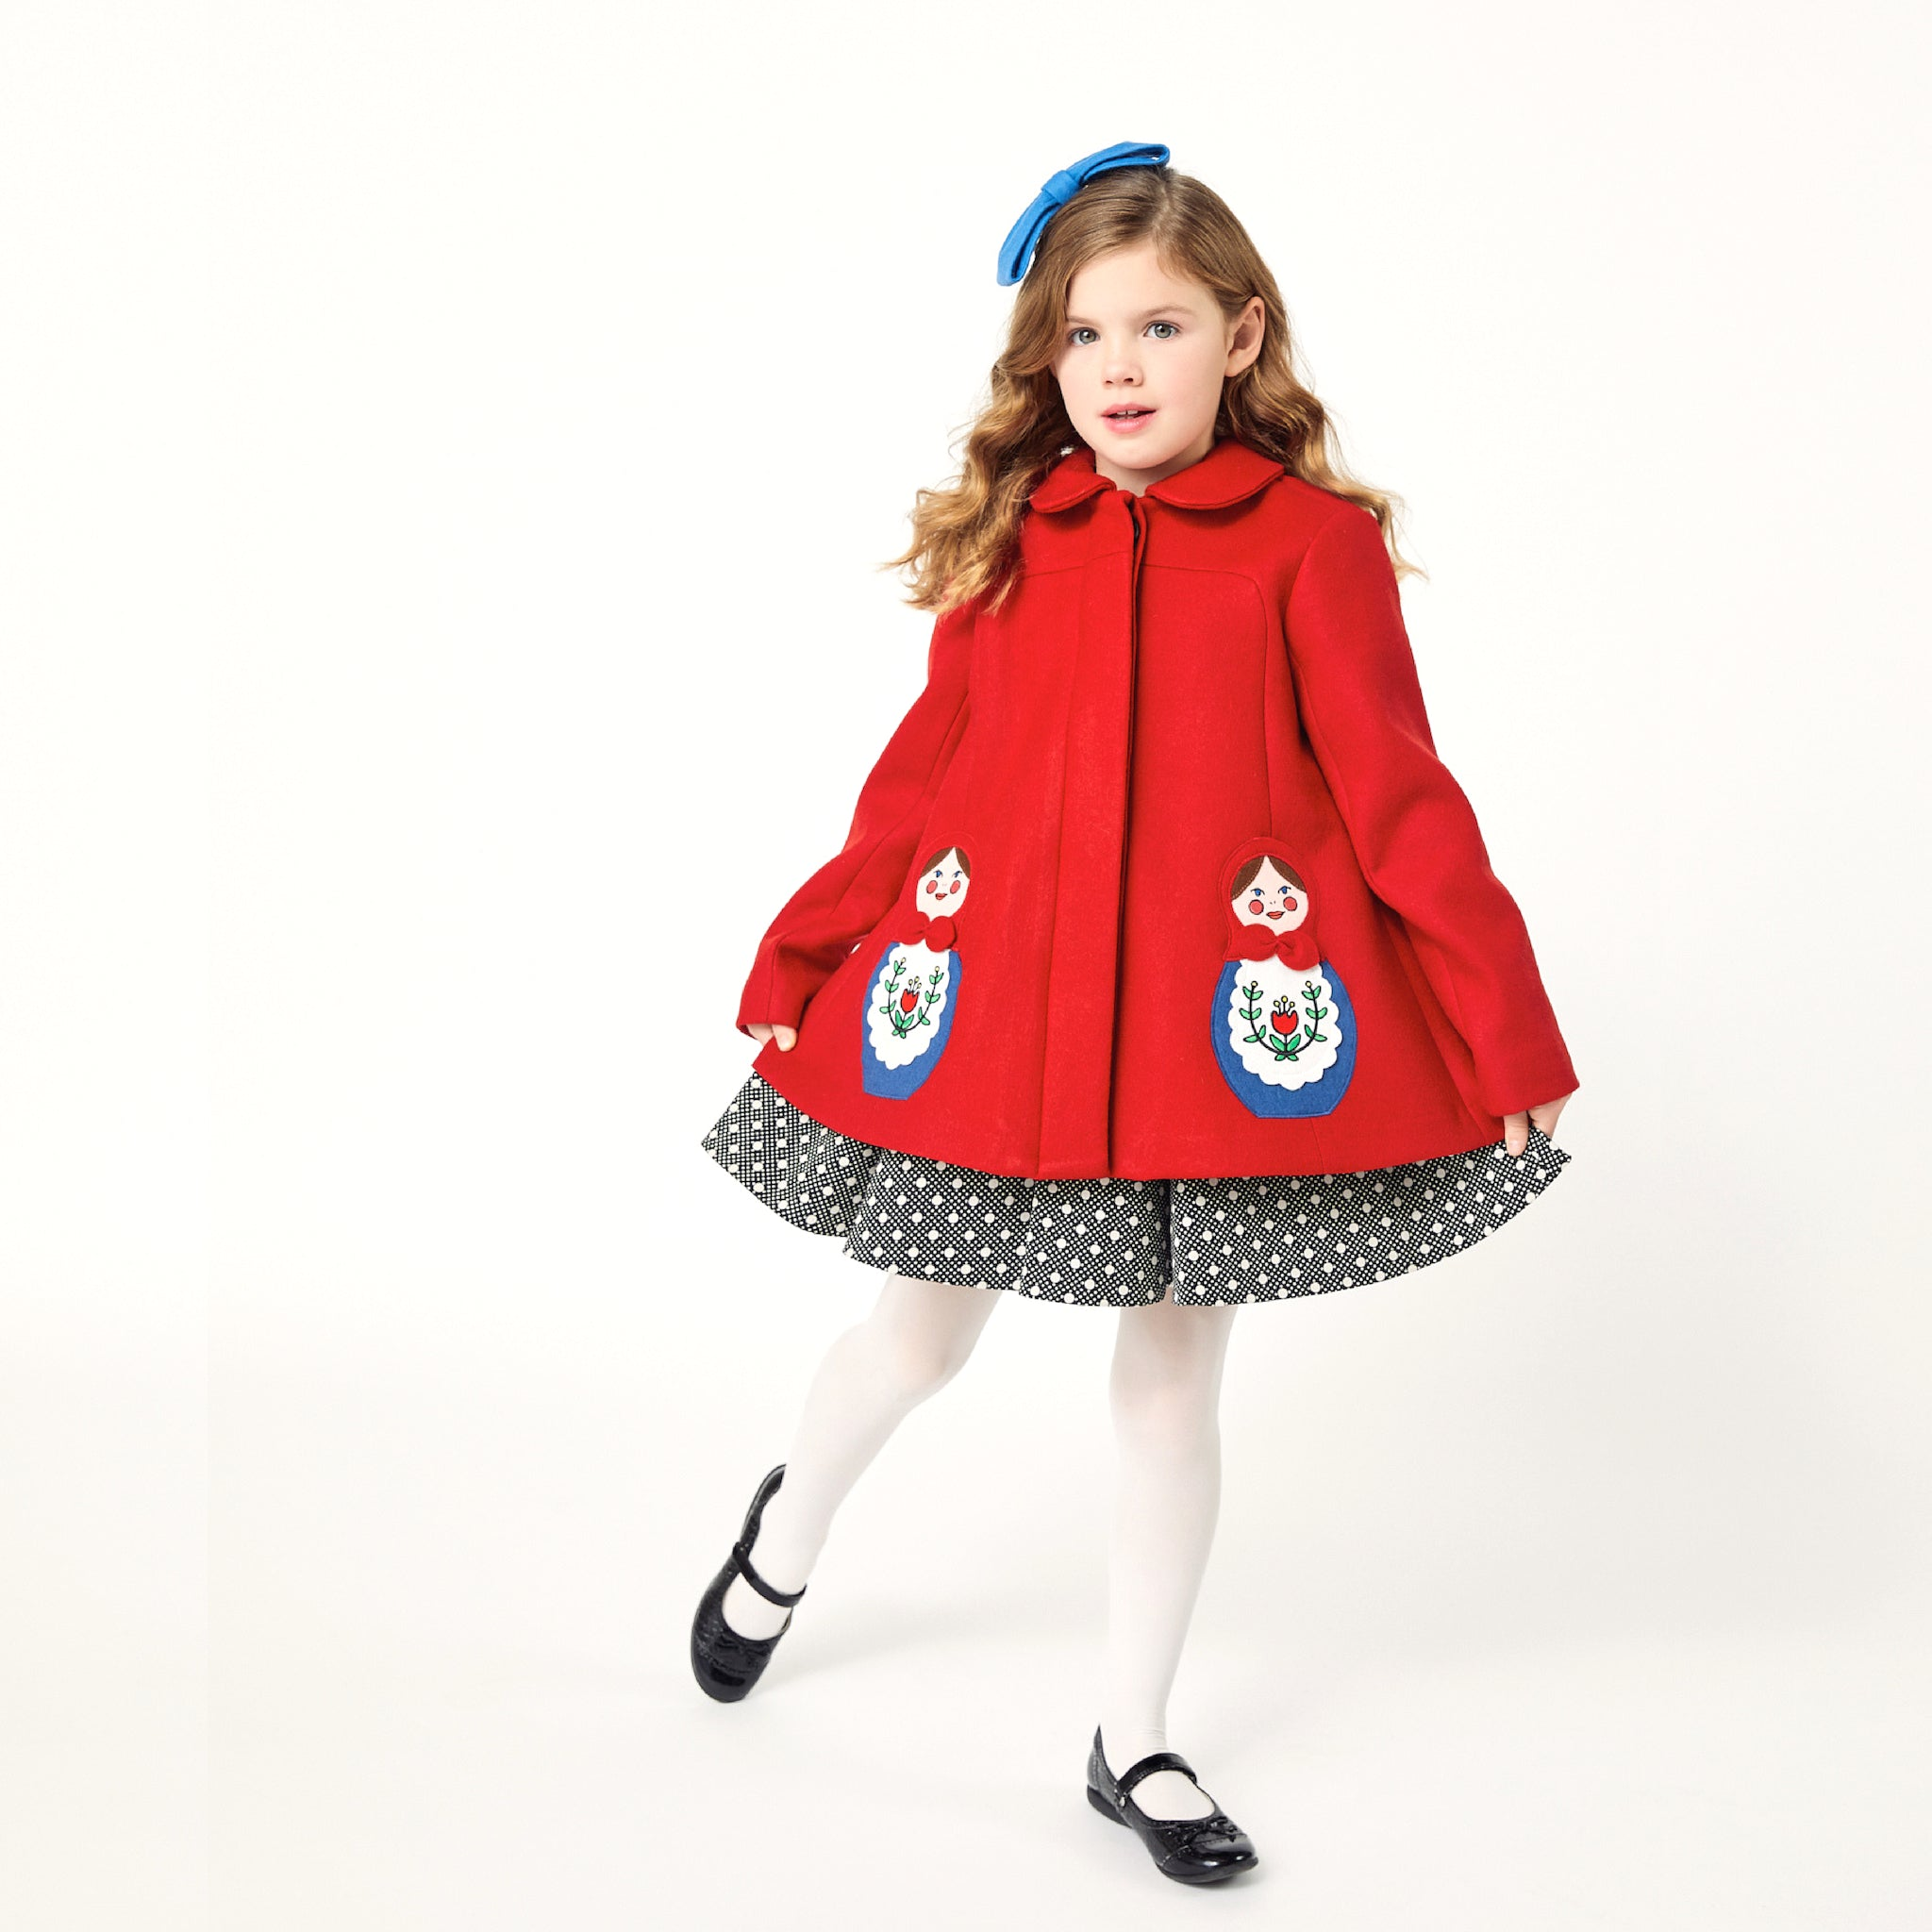 Girl modeling red coat while wearing a polkadot dress underneath and a blue bow on top of her head.